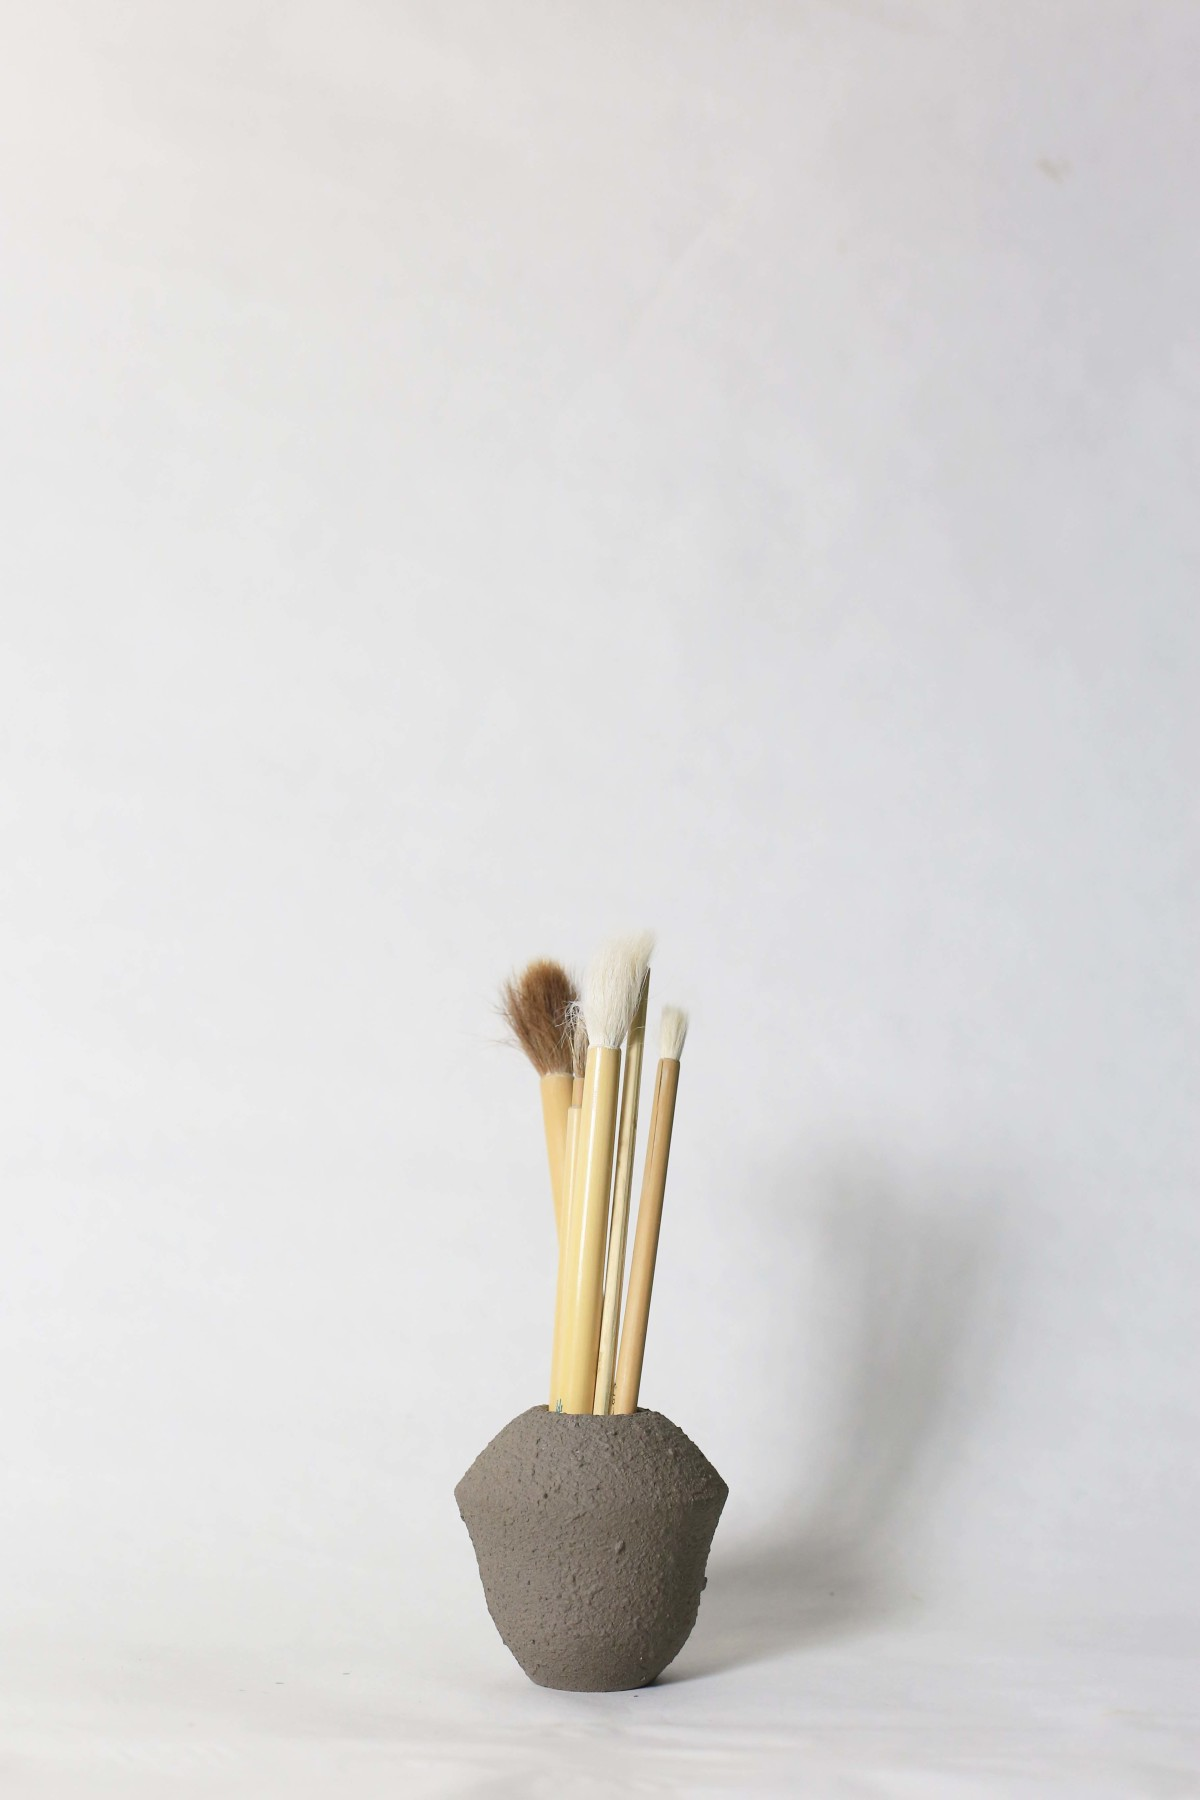 Small grey ceramic vase with brushes in it on a white background